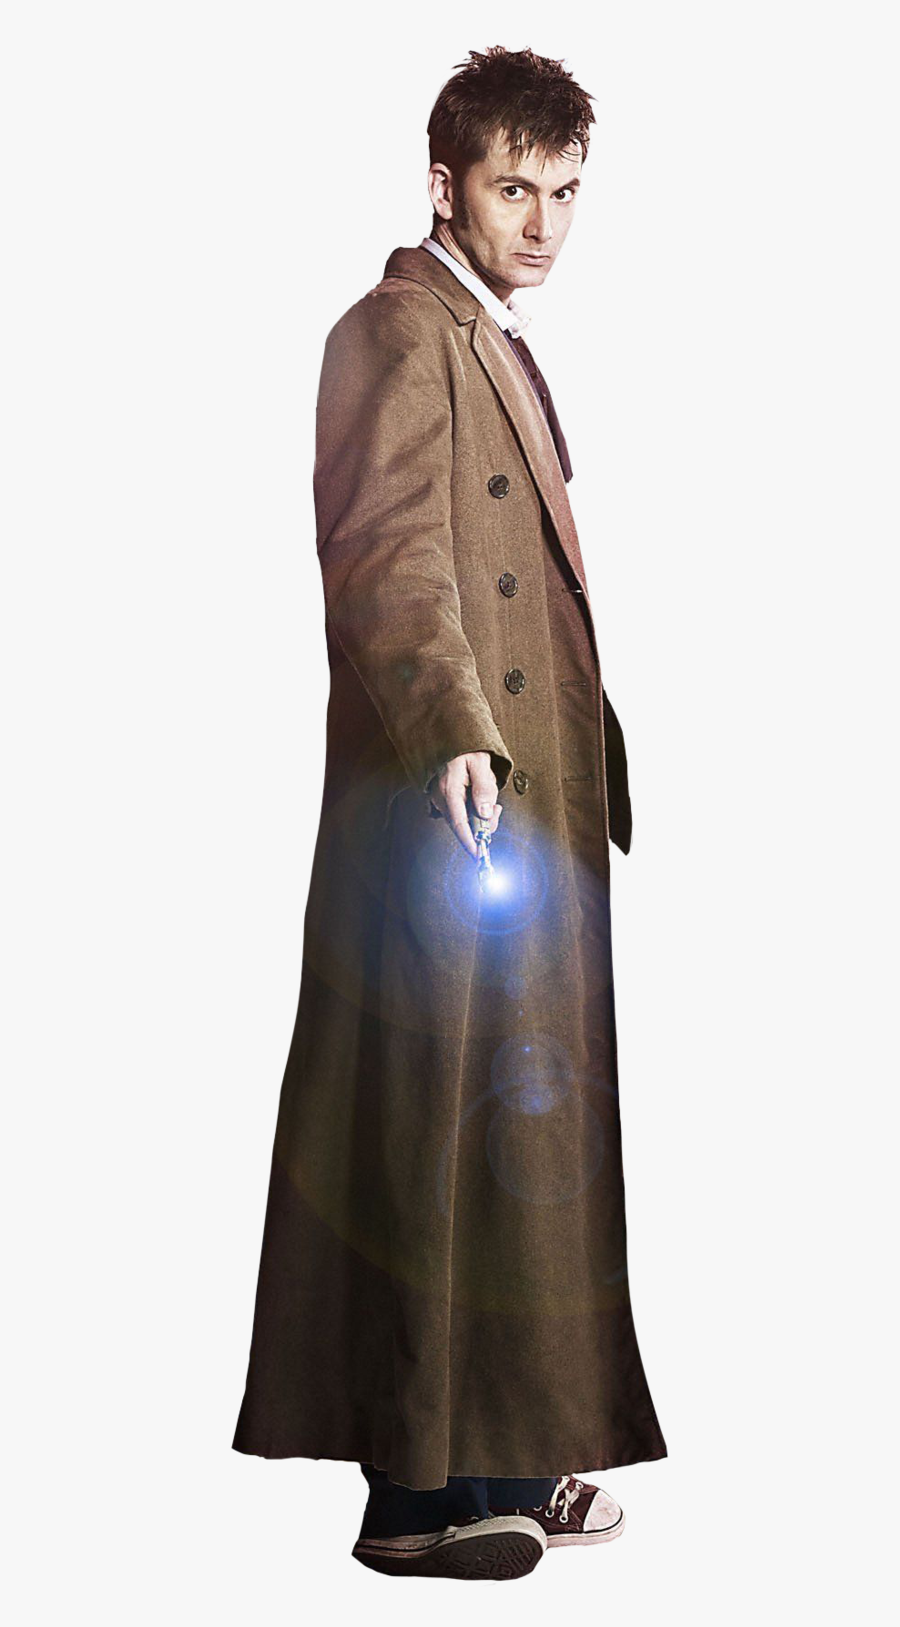 Doctor Who Png Clipart Freeuse Download - Doctor Who 10th Doctor Png, Transparent Clipart